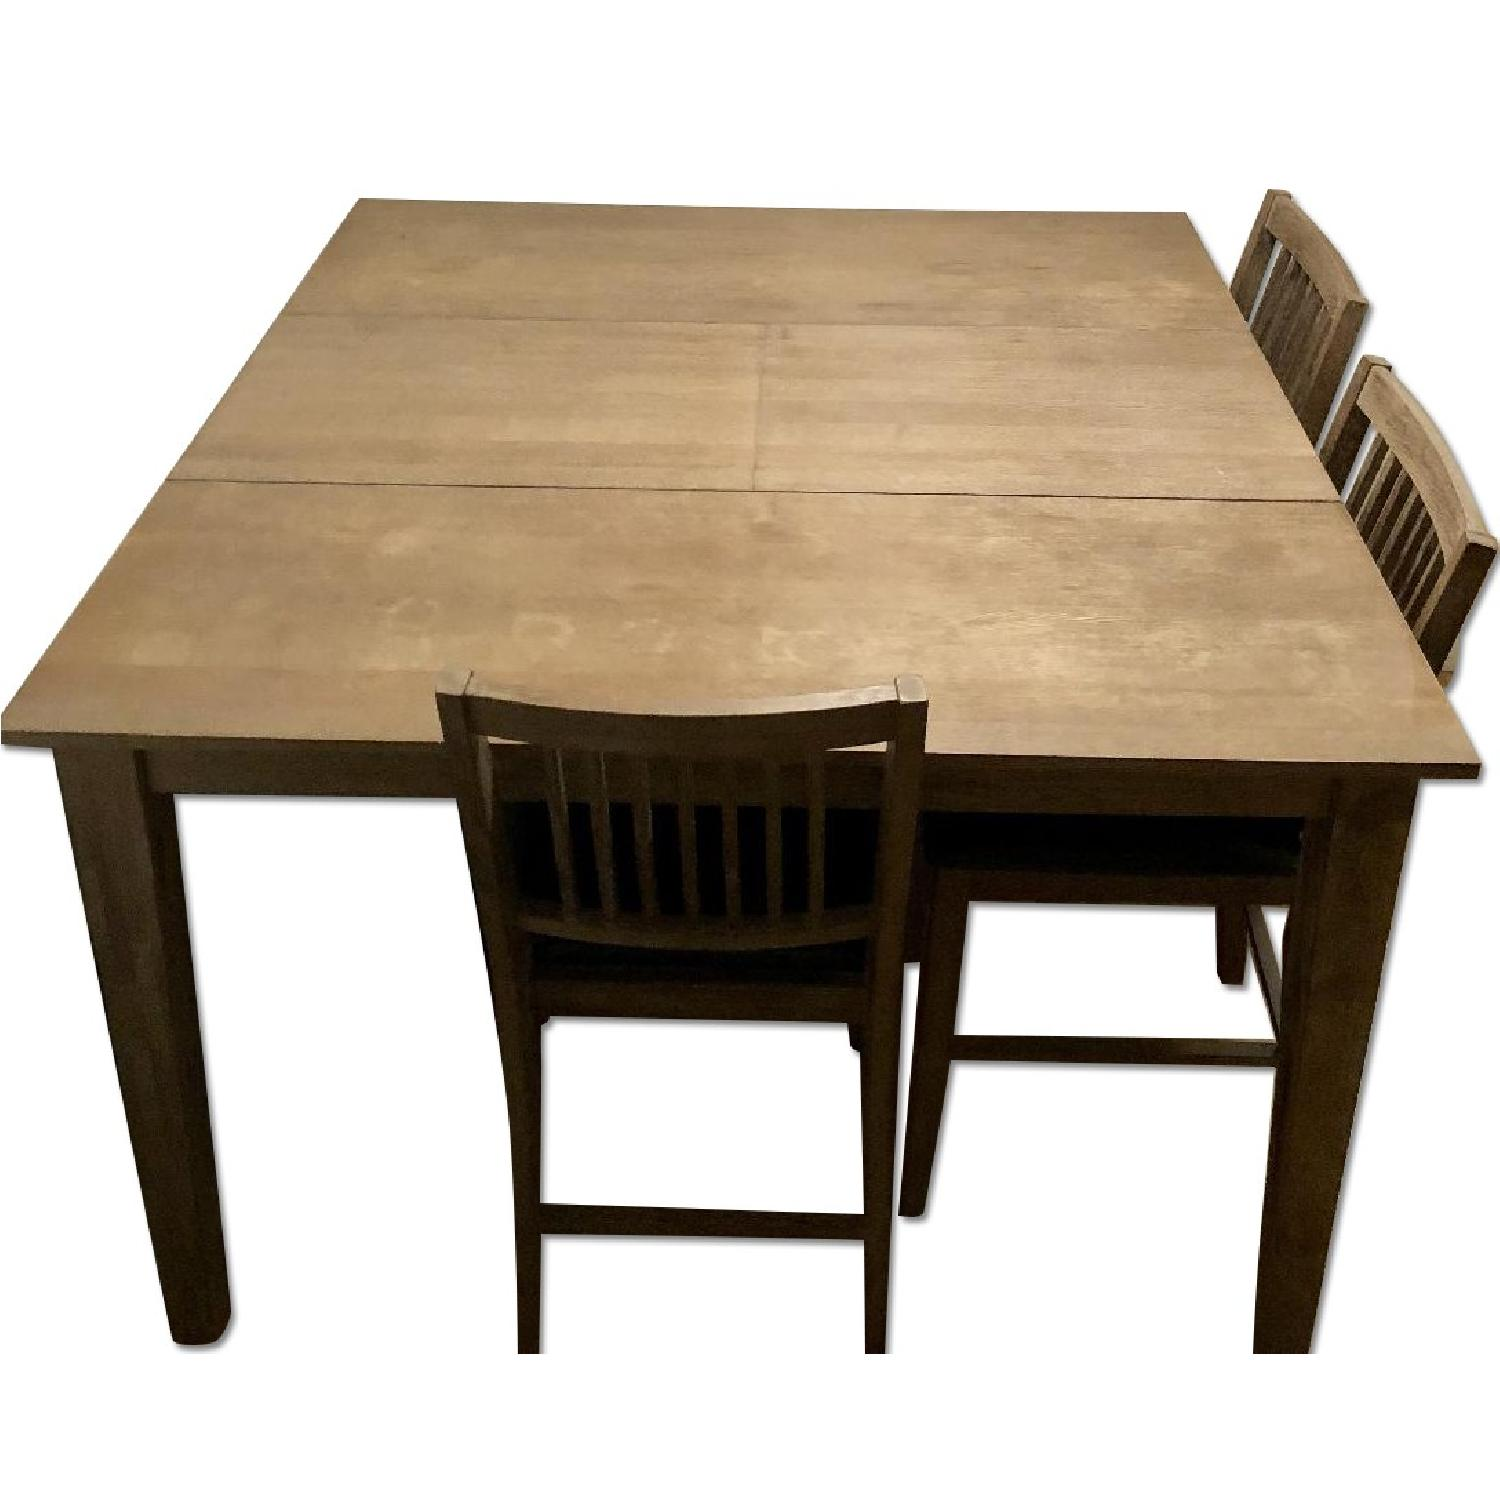 Rooms To Go Dining Table w/ Butterfly Leaf & 3 Chairs